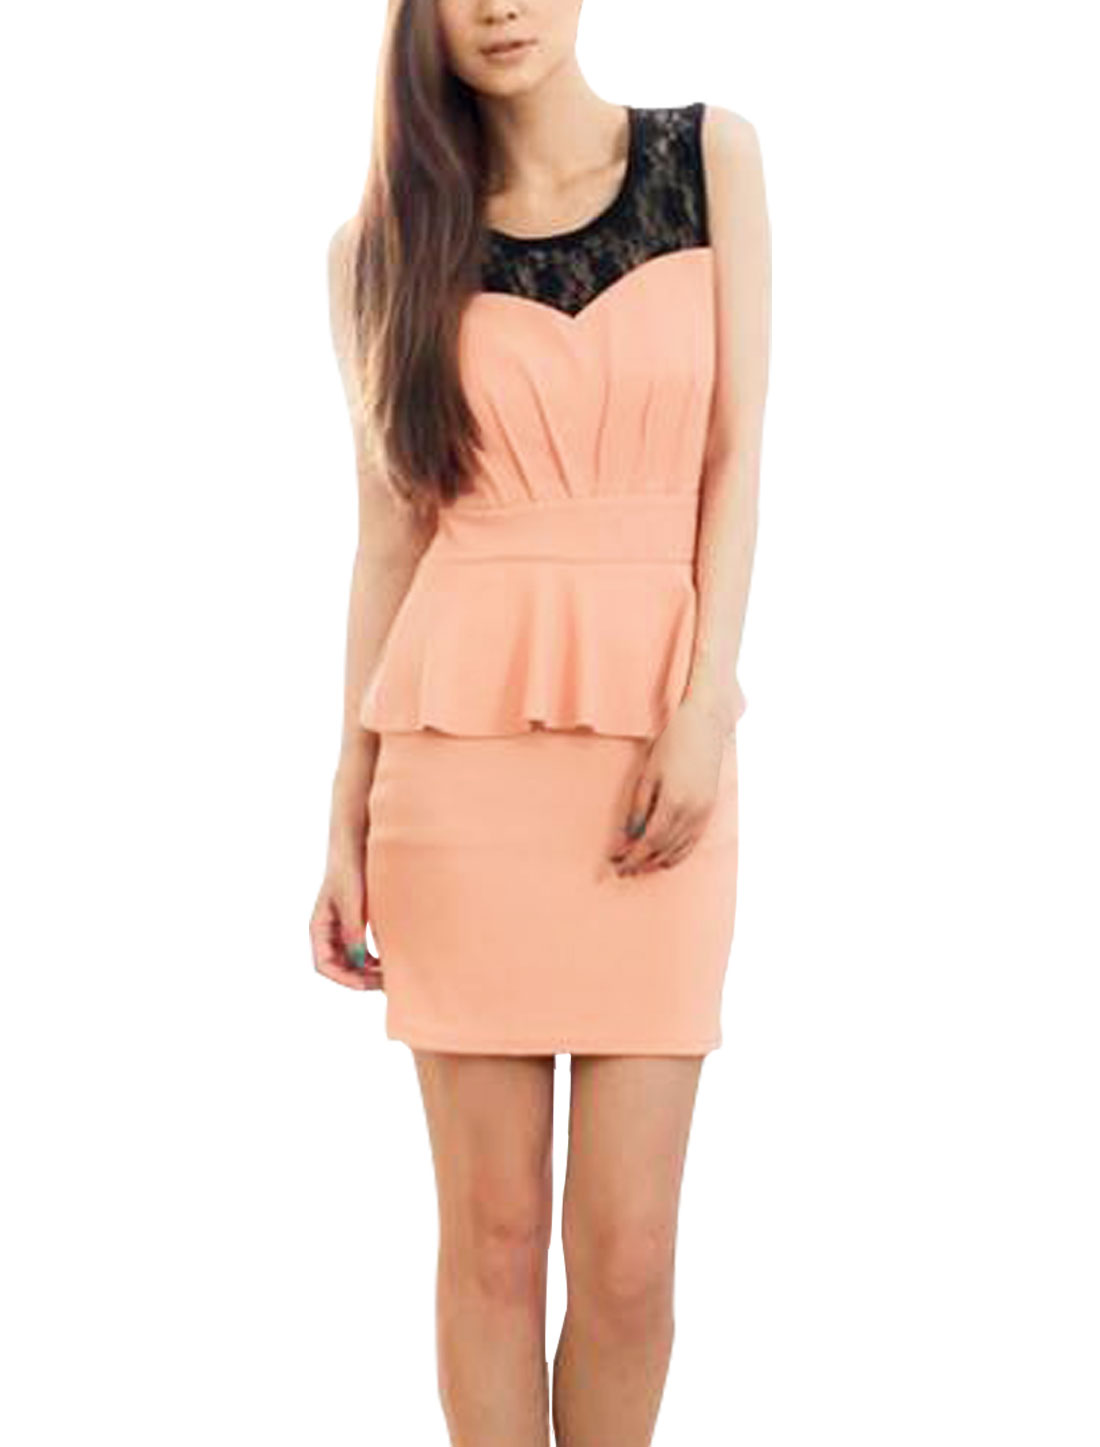 Above Knee Round Neck Chiffon Fashion Chic Dress For Ladies Pink XS